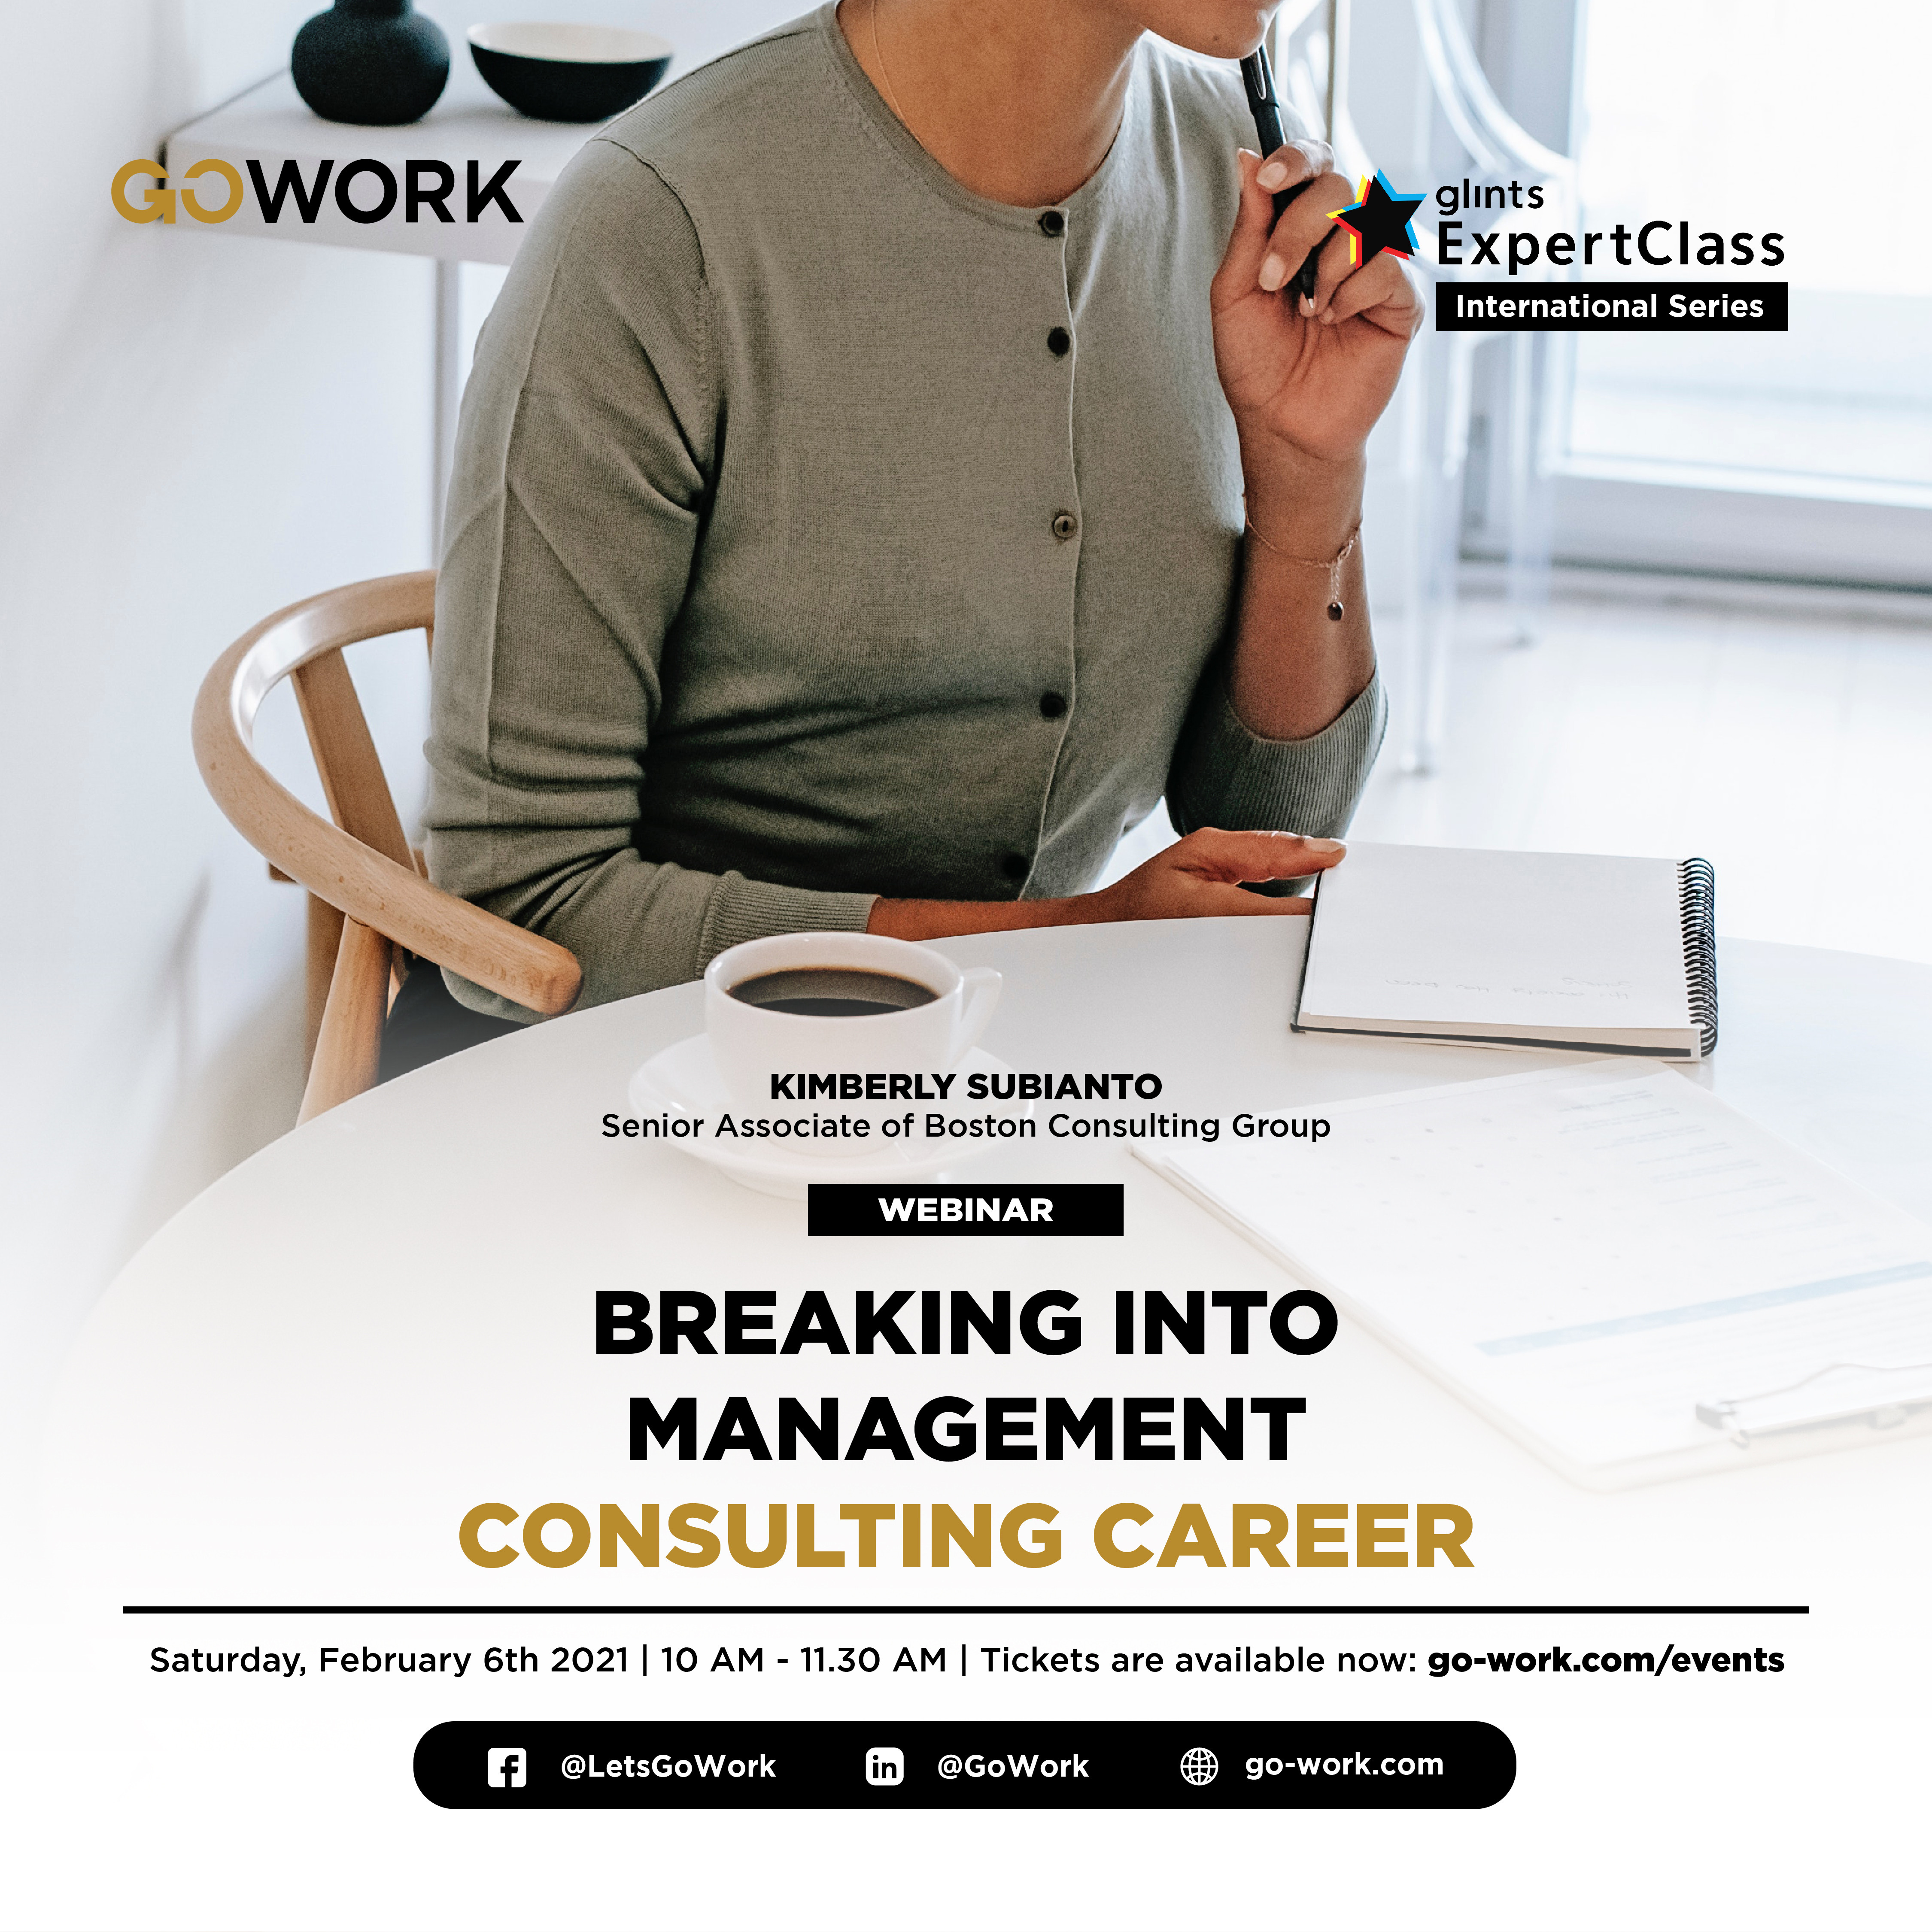 Breaking into Management Consulting Career